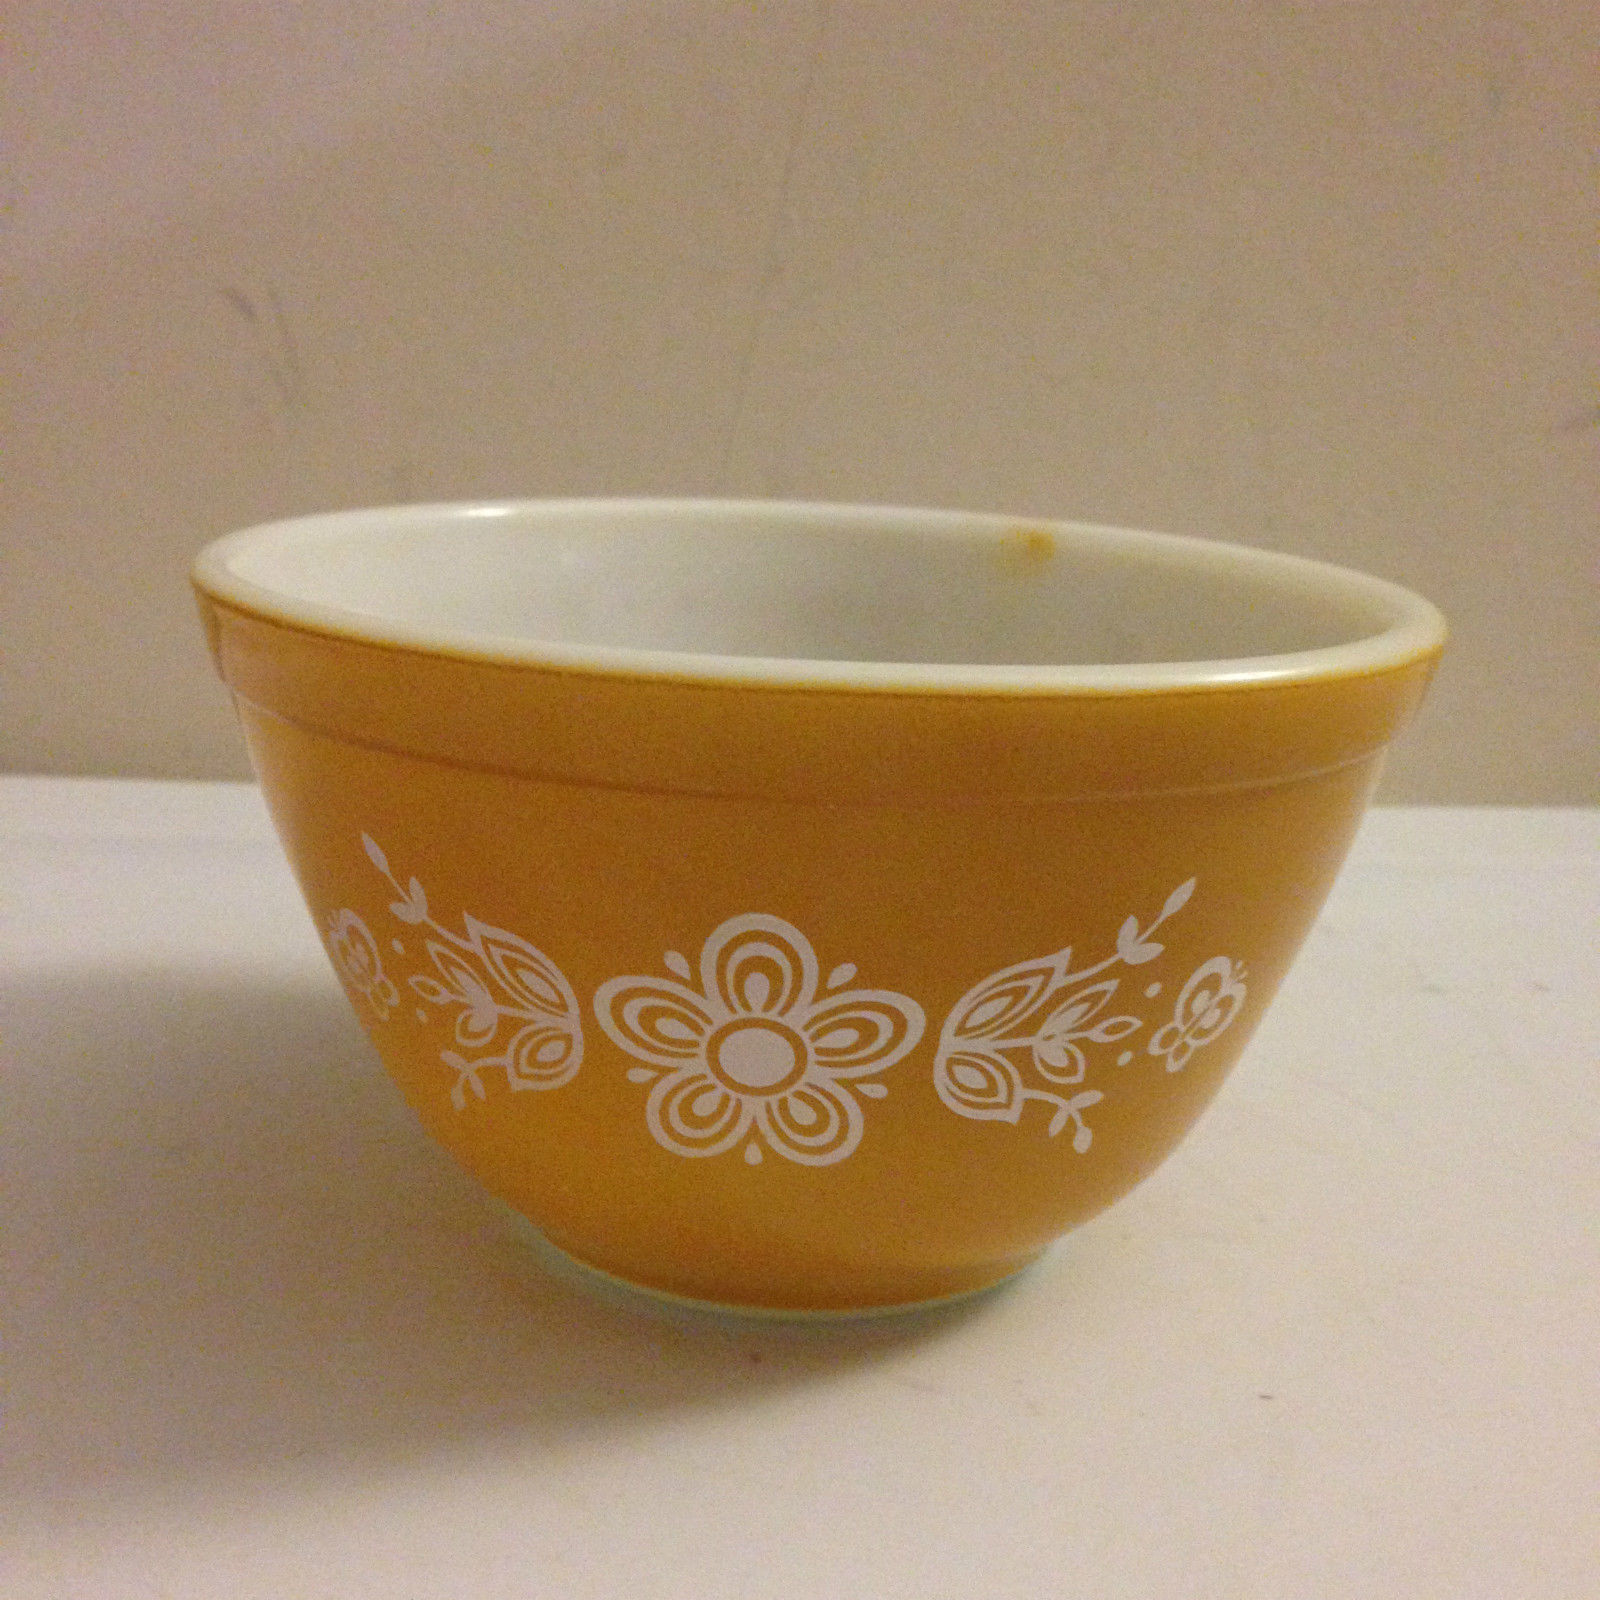 Vintage Pyrex 1.5 pt Butterfly Gold Nesting and 14 similar items